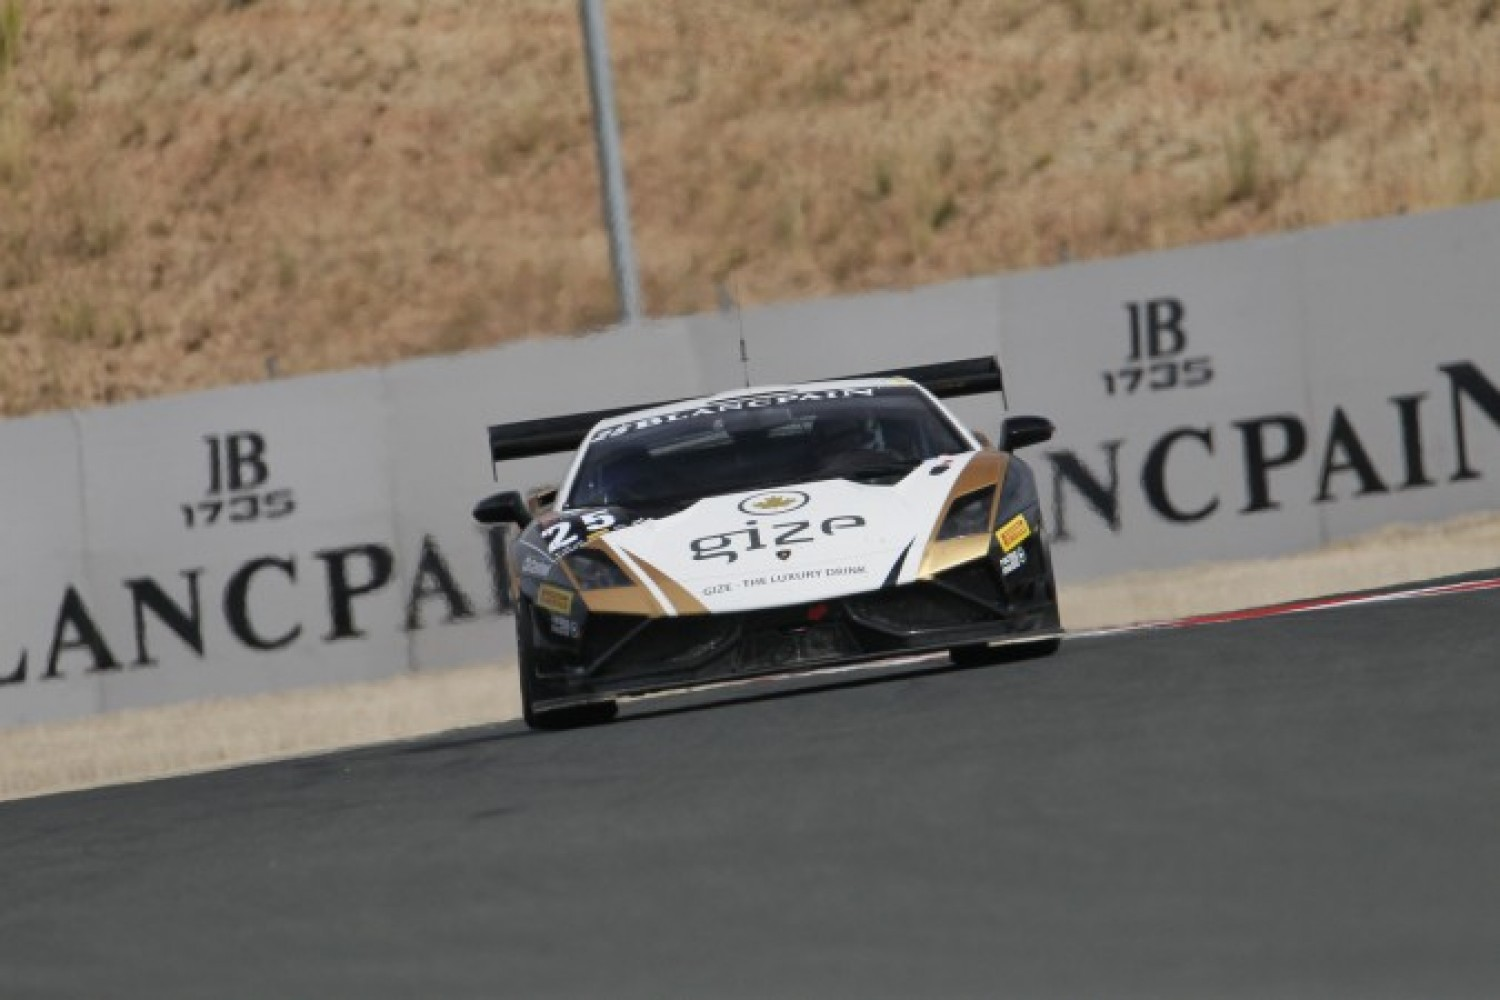 Grasser Racing Team is determined to be among the frontrunners in the Blancpain Sprint